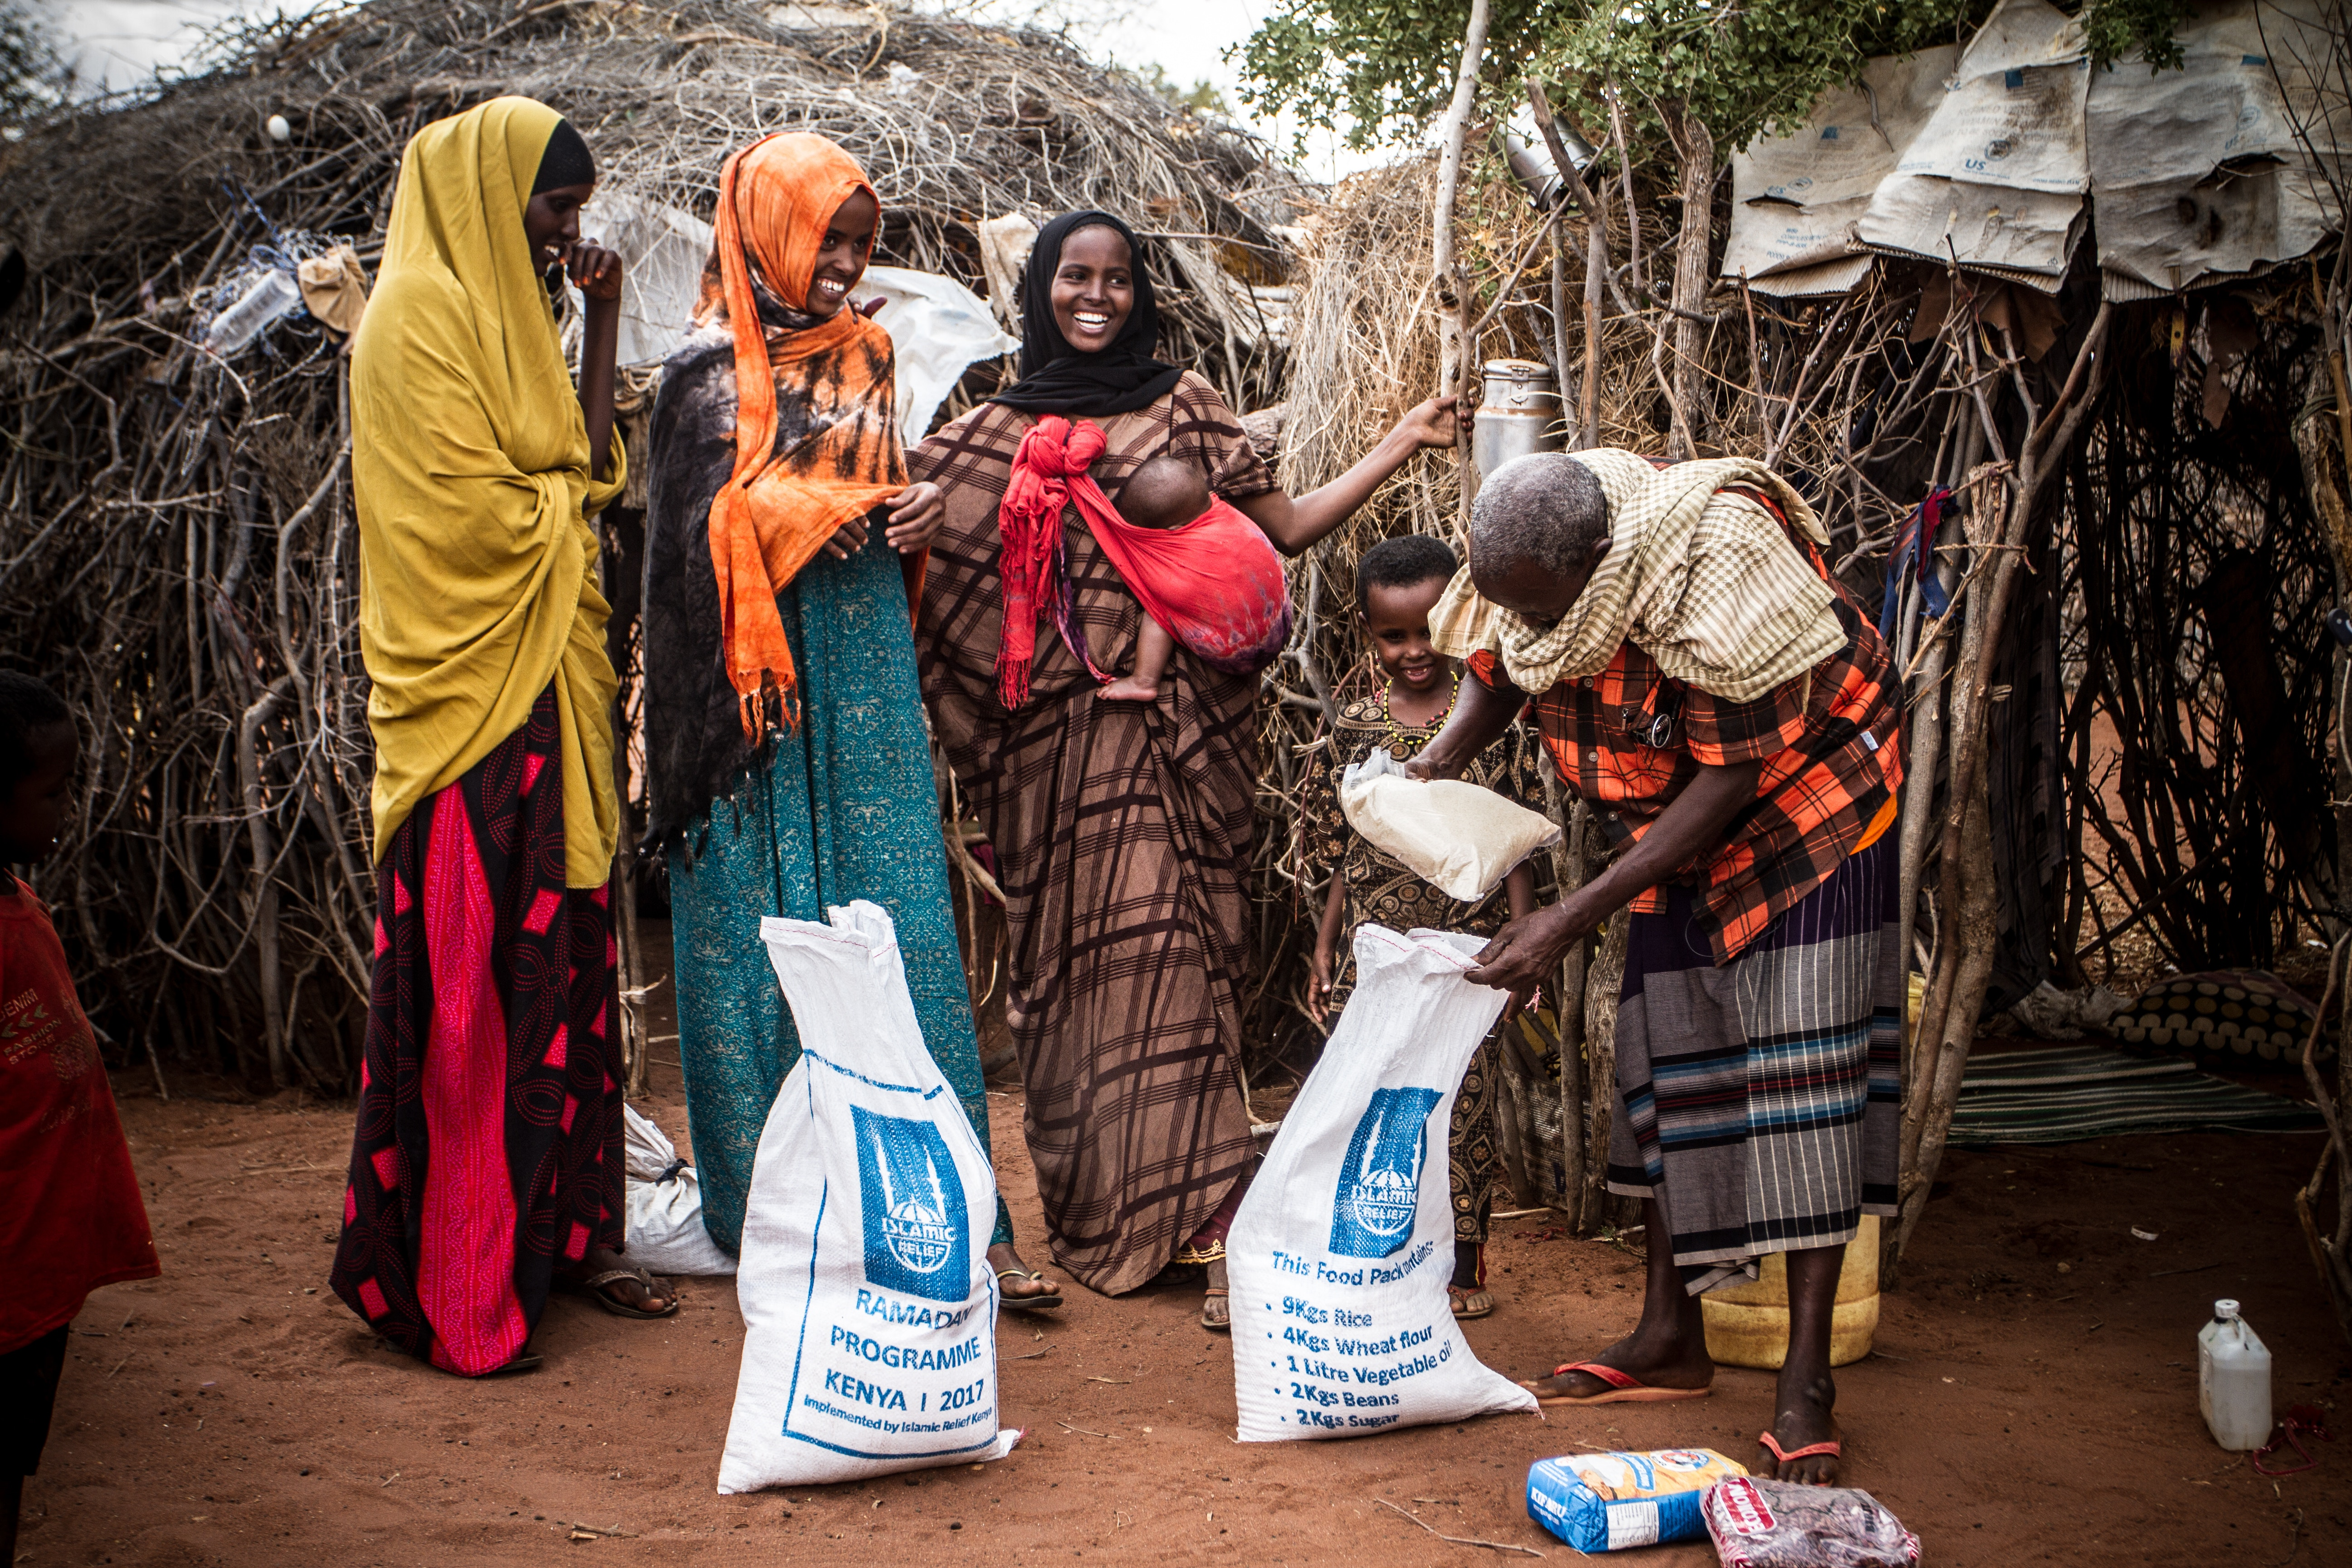 A group of Kenyan women standing in front of huts receiving two bags of rice.